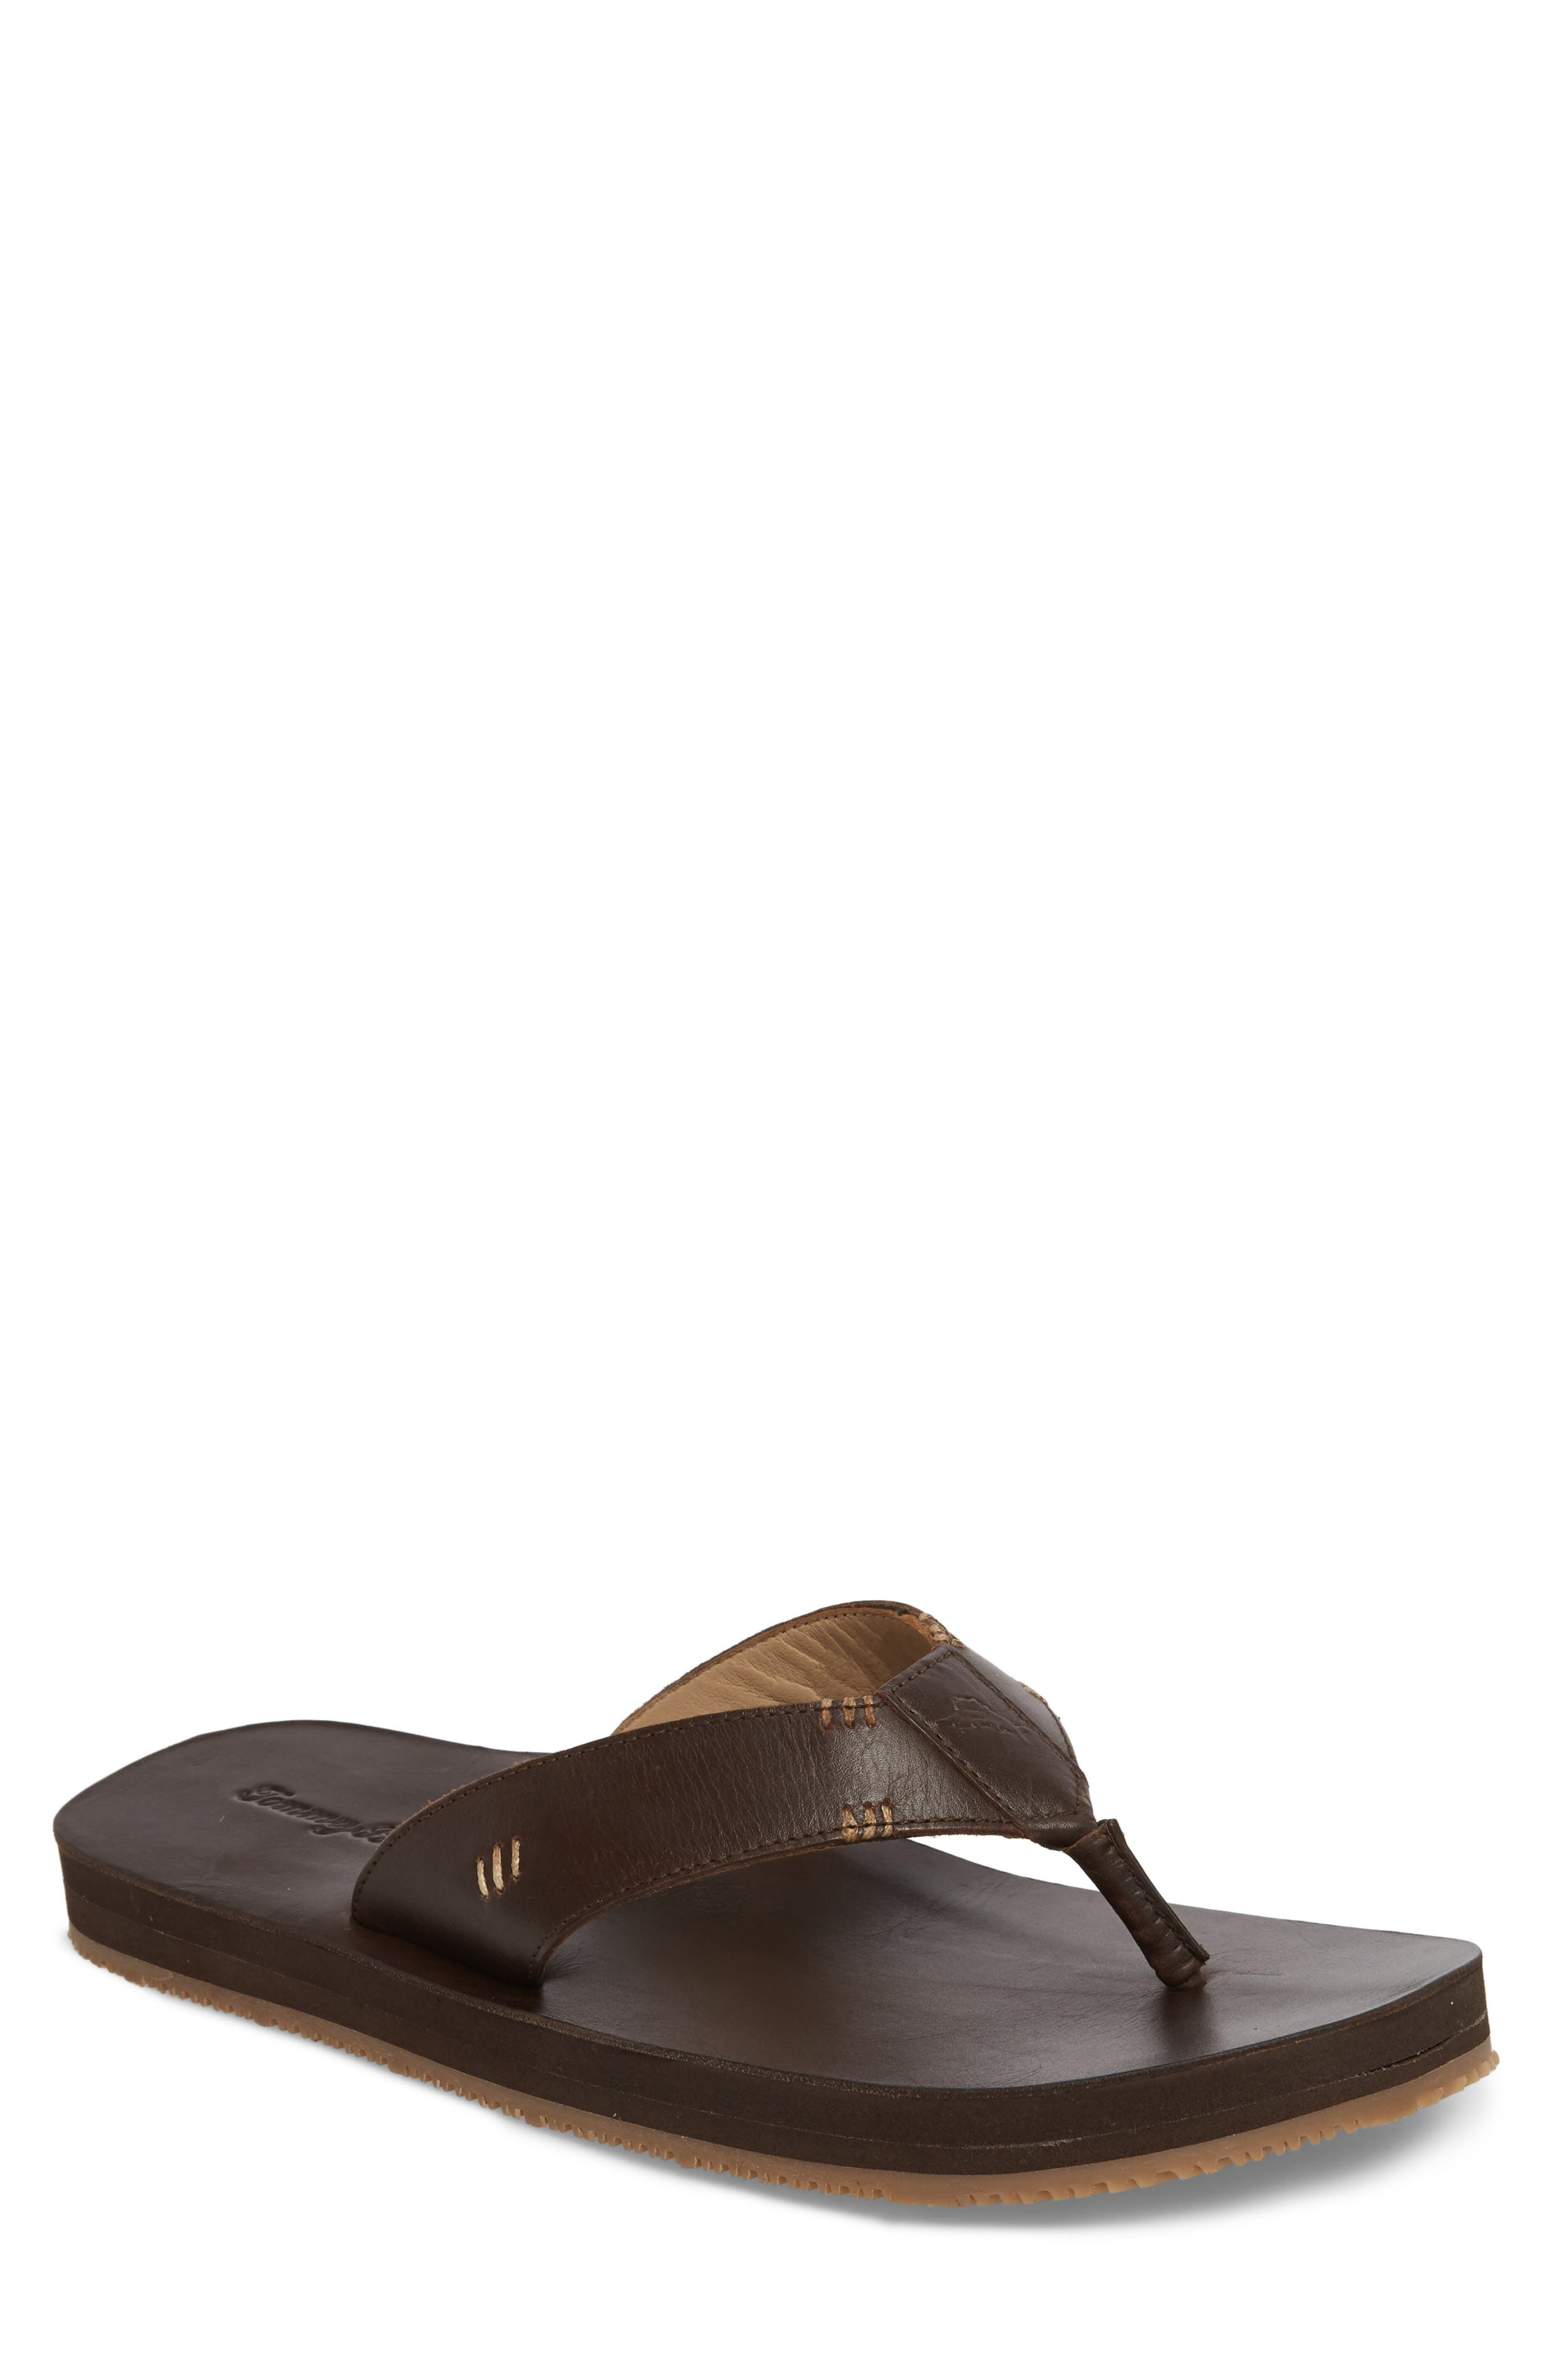 Adderly Flip Flop,                             Main thumbnail 1, color,                             REDDISH BROWN LEATHER